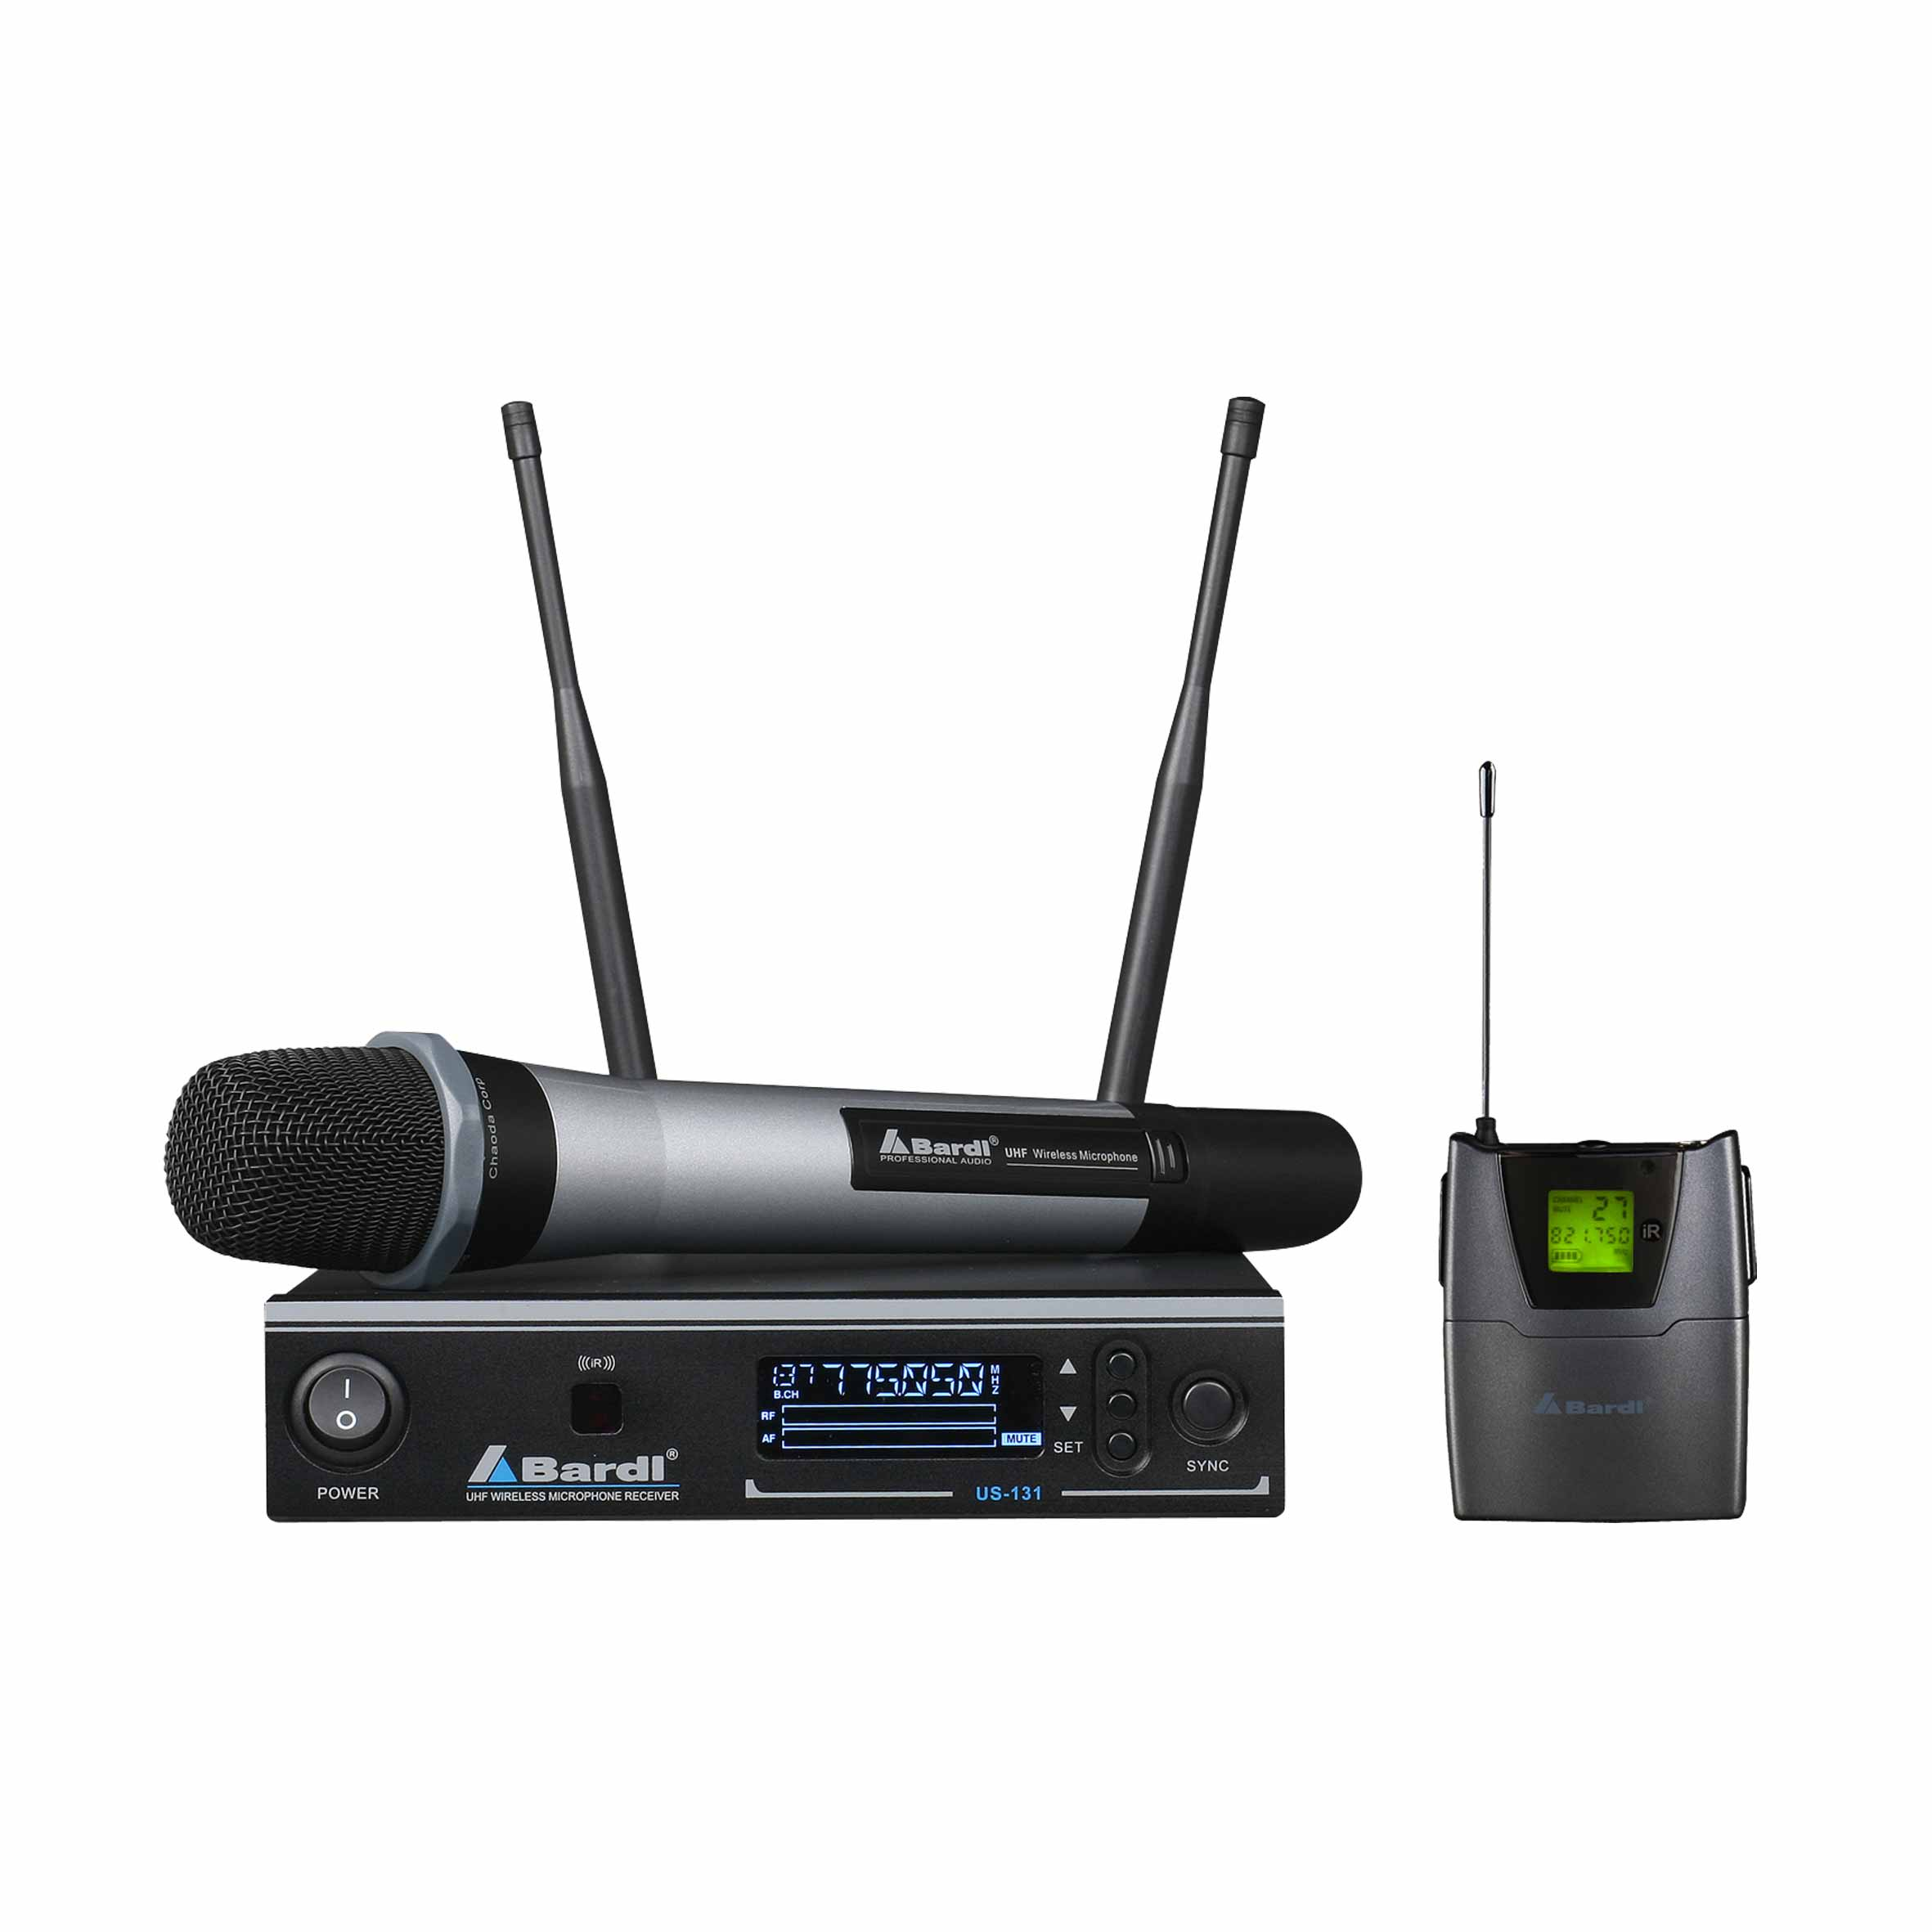 Bardl Professional wireless microphone US-131